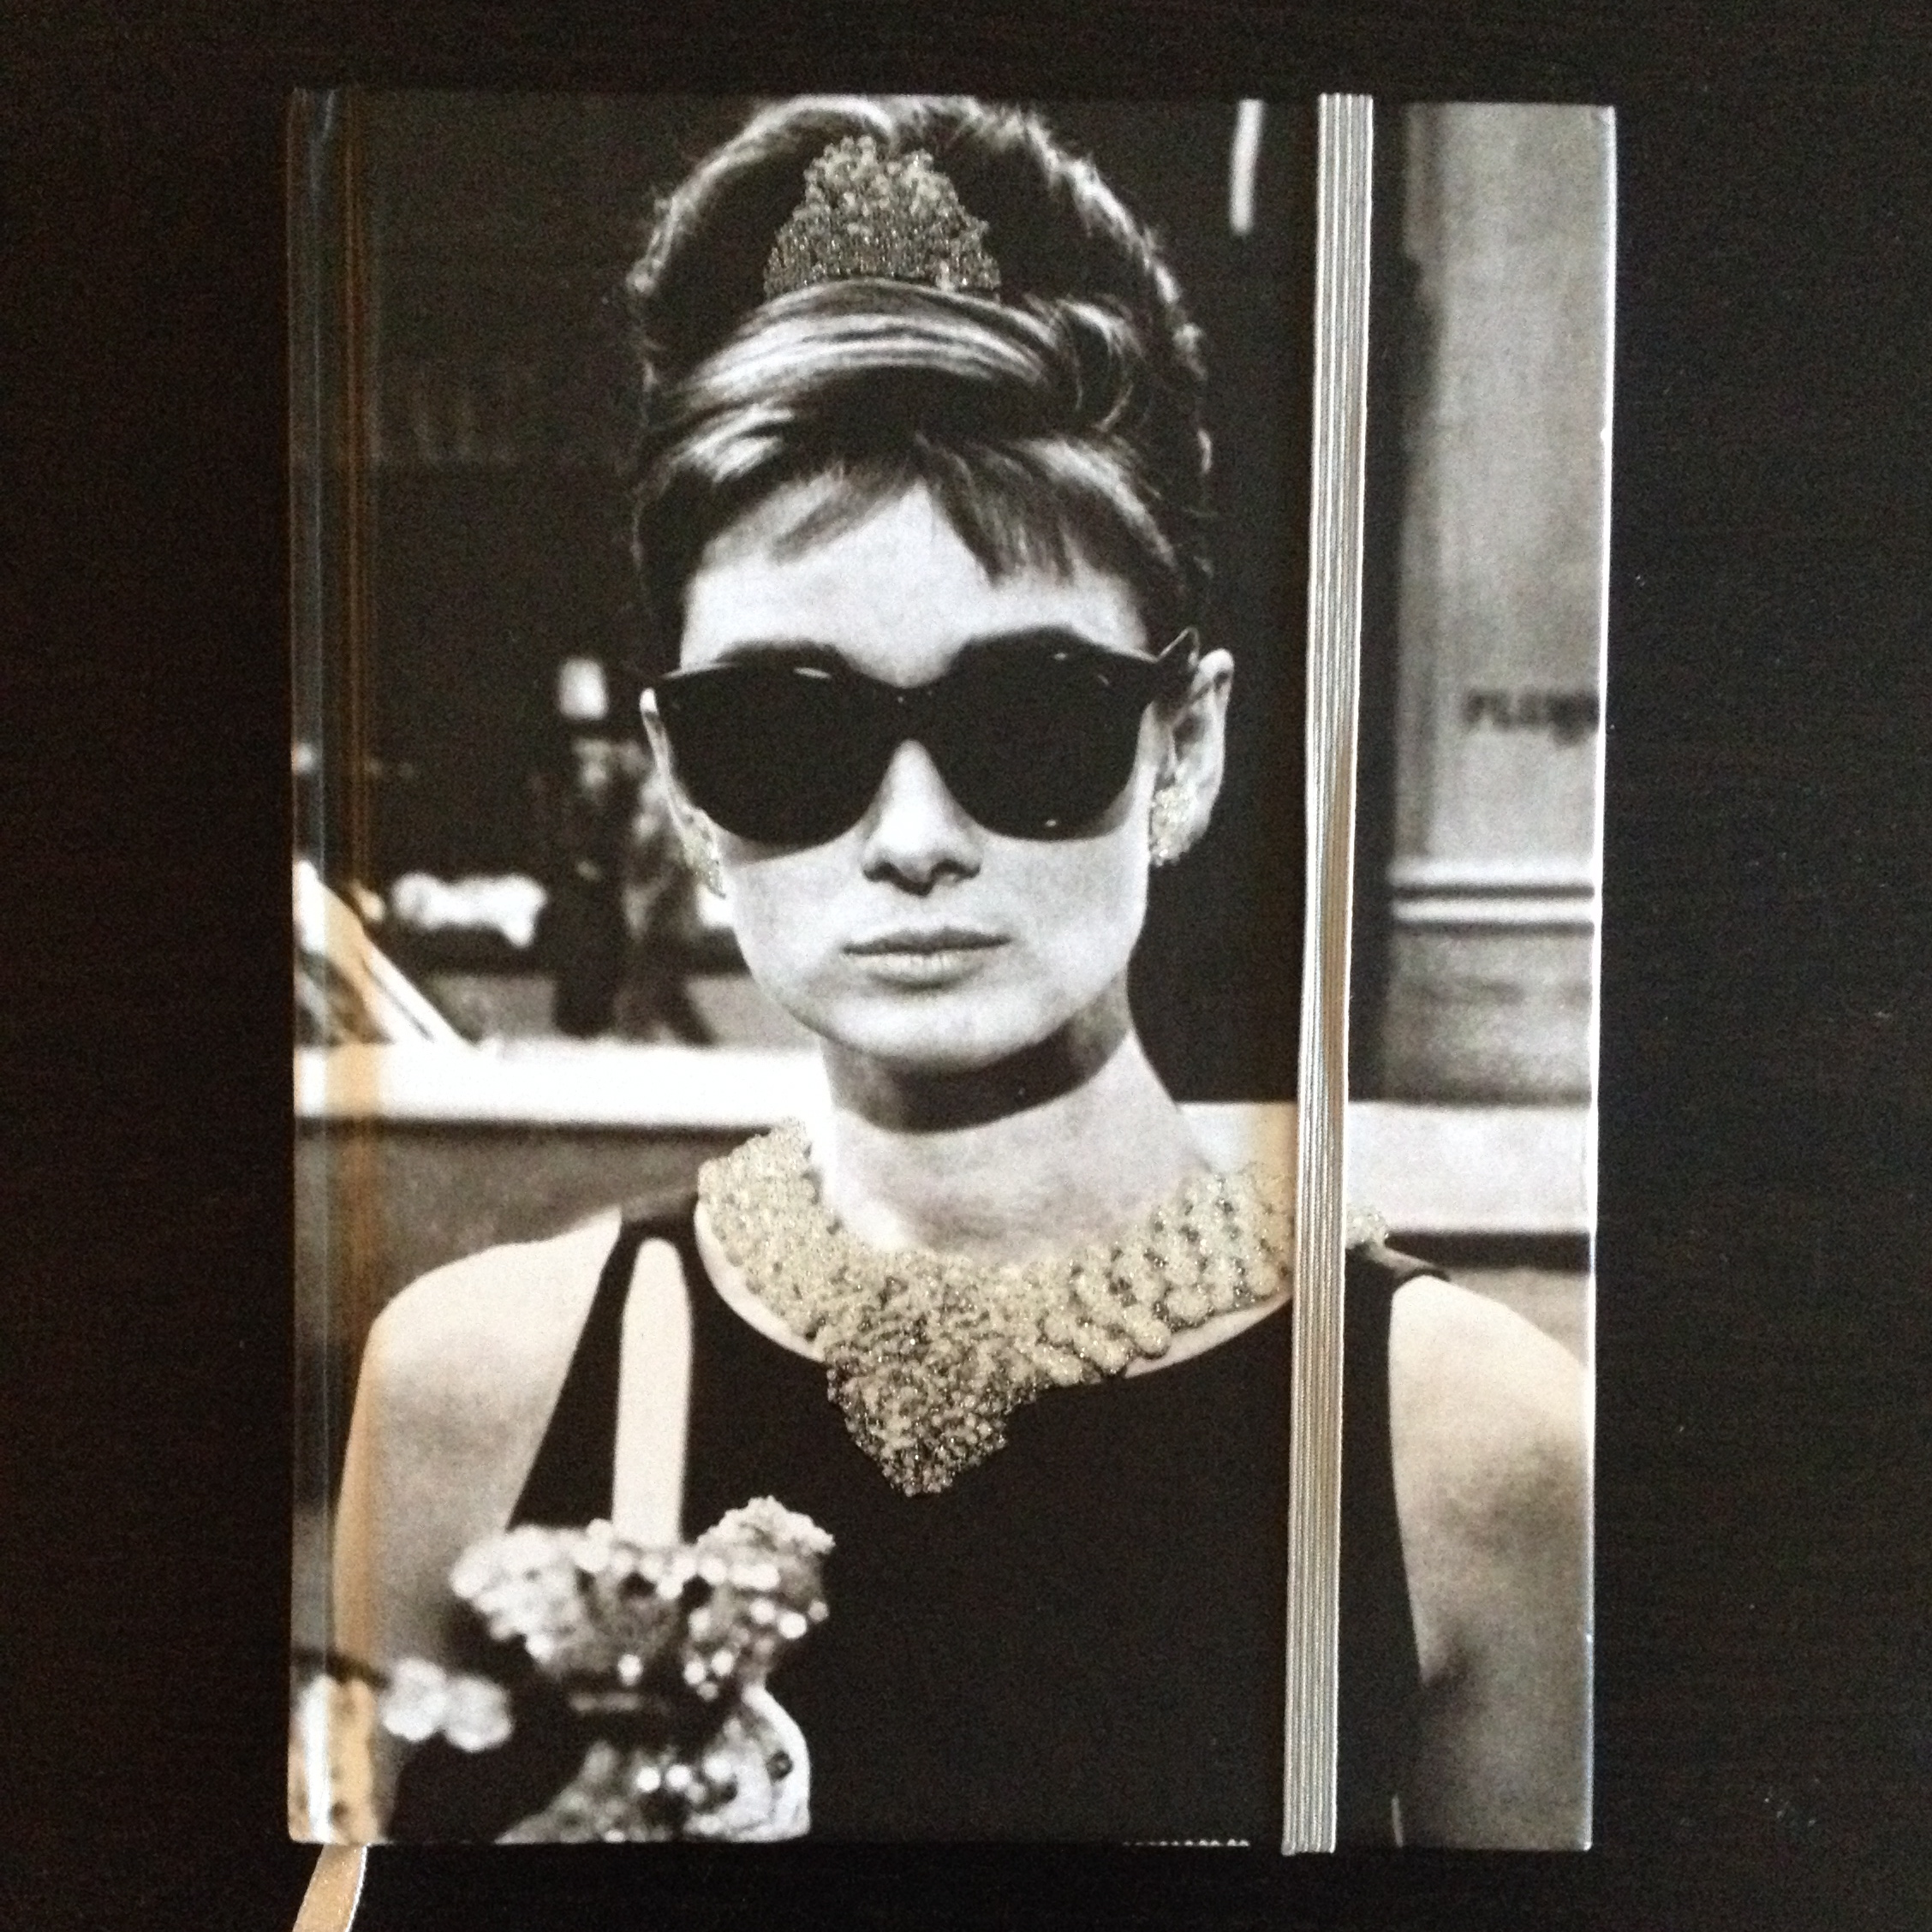 I wasn't kidding about my journal... I just love Audrey!